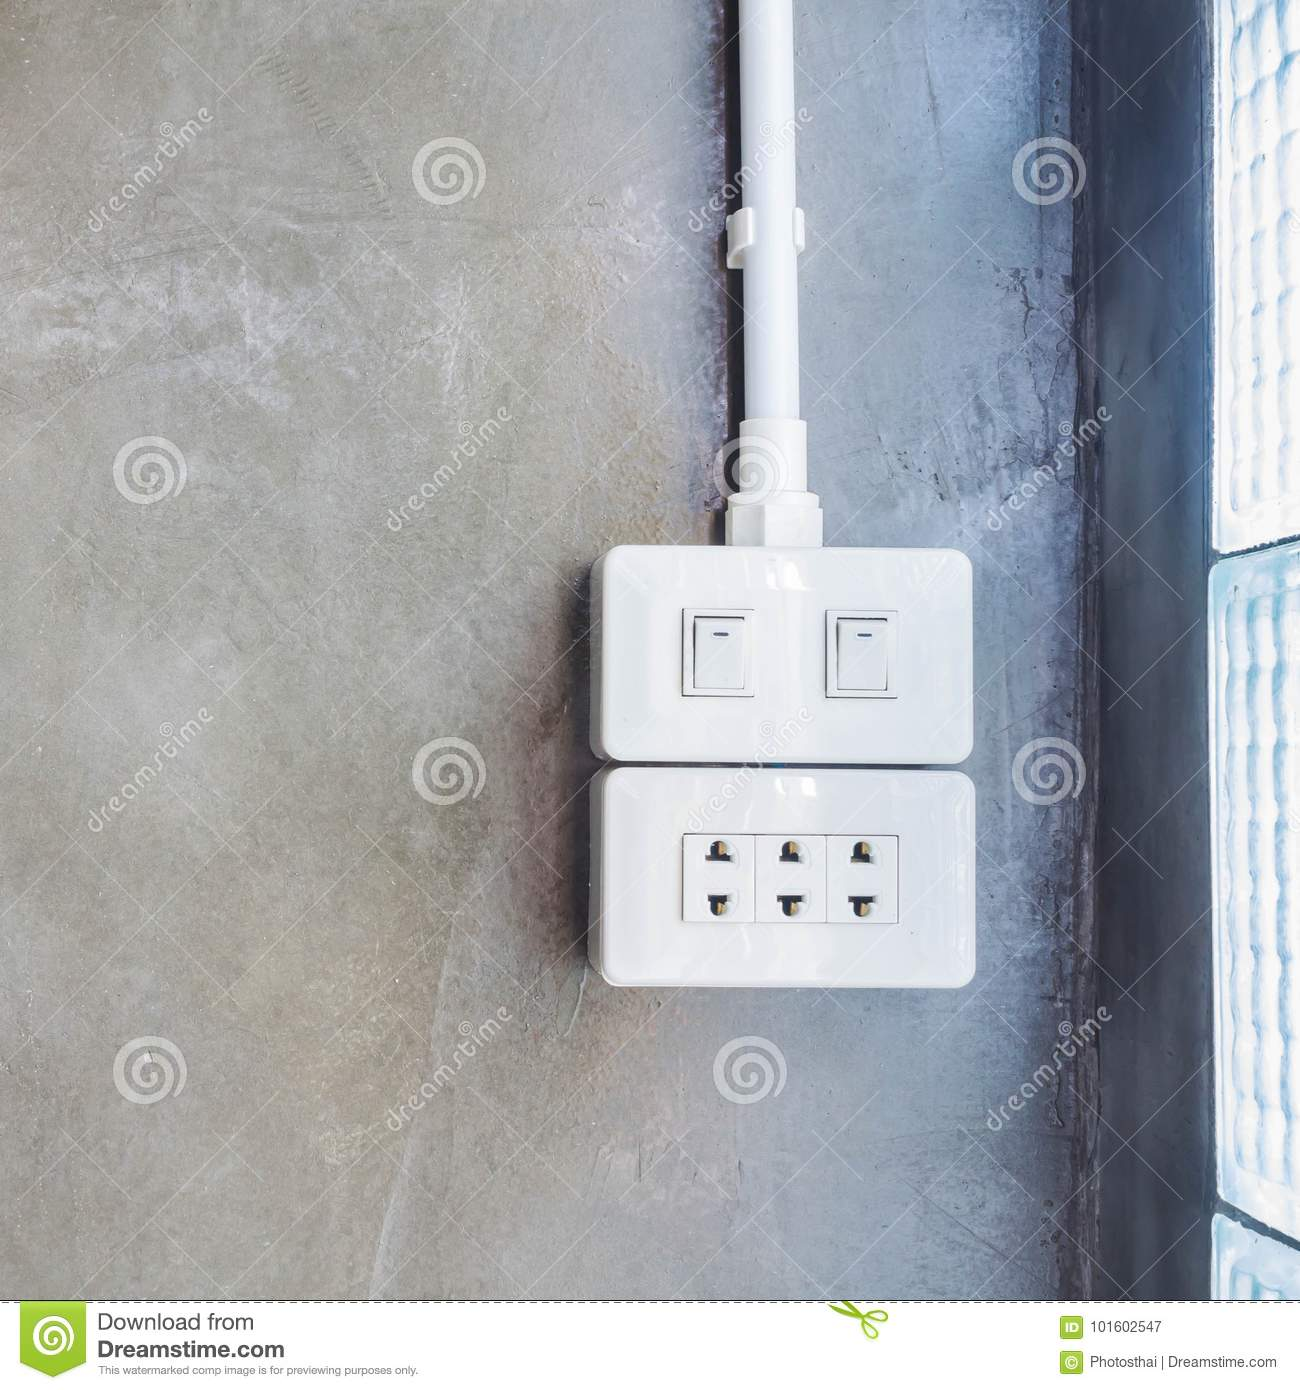 Electric Switch And Plug Circuit On The Concrete Wall Stock Image ...